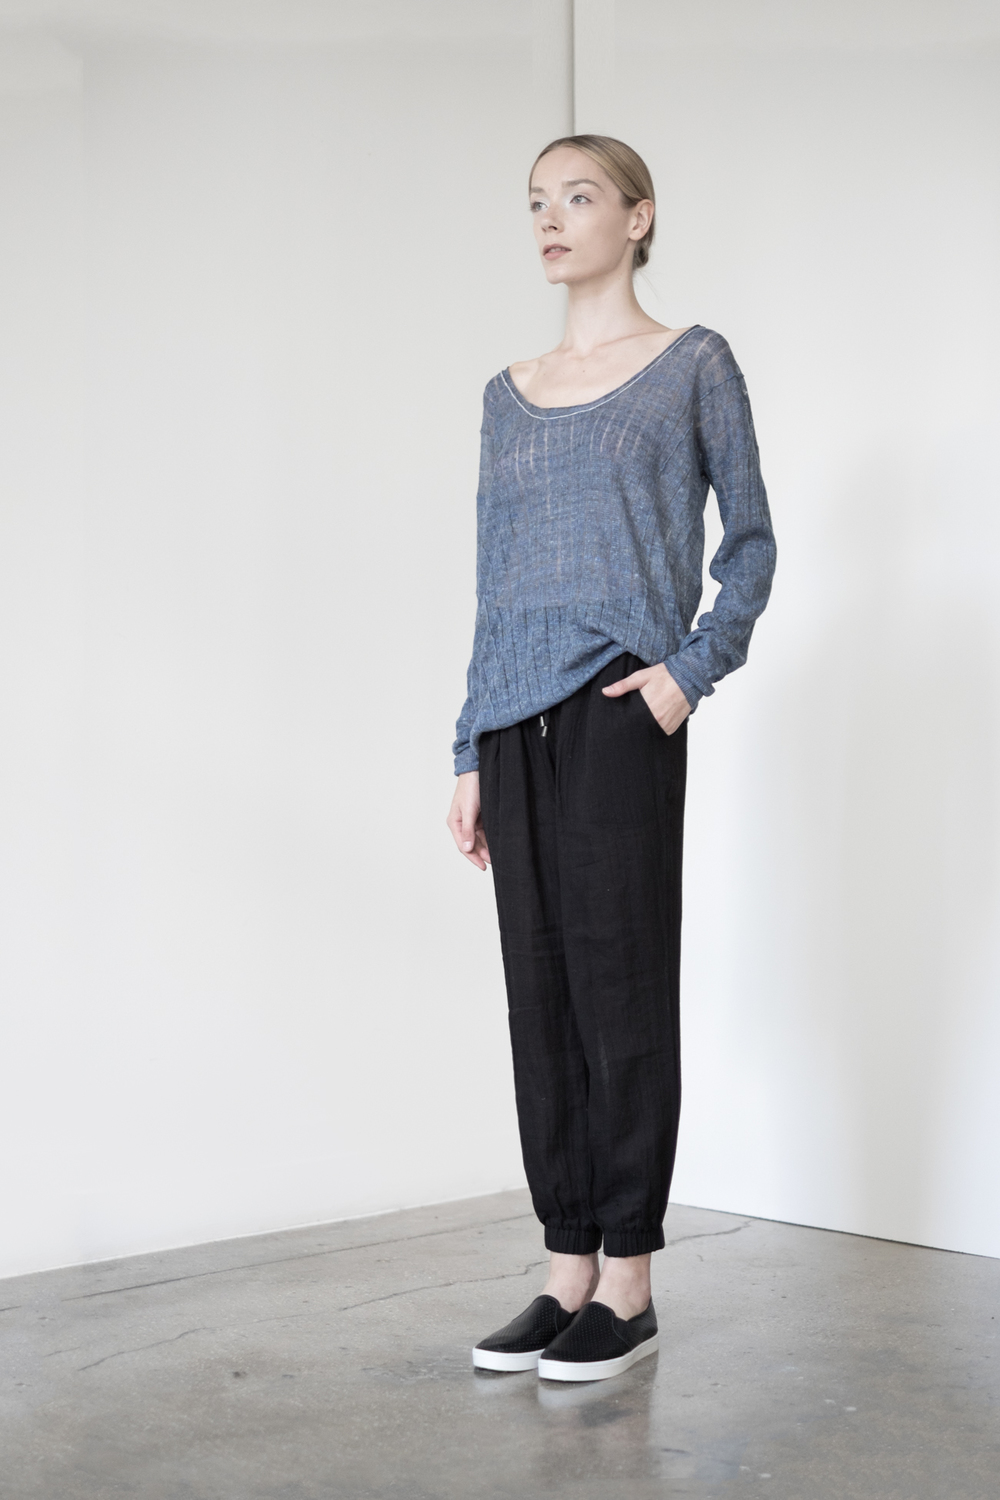 LOOK 42   TOP:   2230  / Denim   -    Scoop neck long sleeve, in fine gauge Italian linen neps.   BOTTOM:   2290  / Noir  -   Jogger pants in 100% Cotton woven dbl. layer gauze.